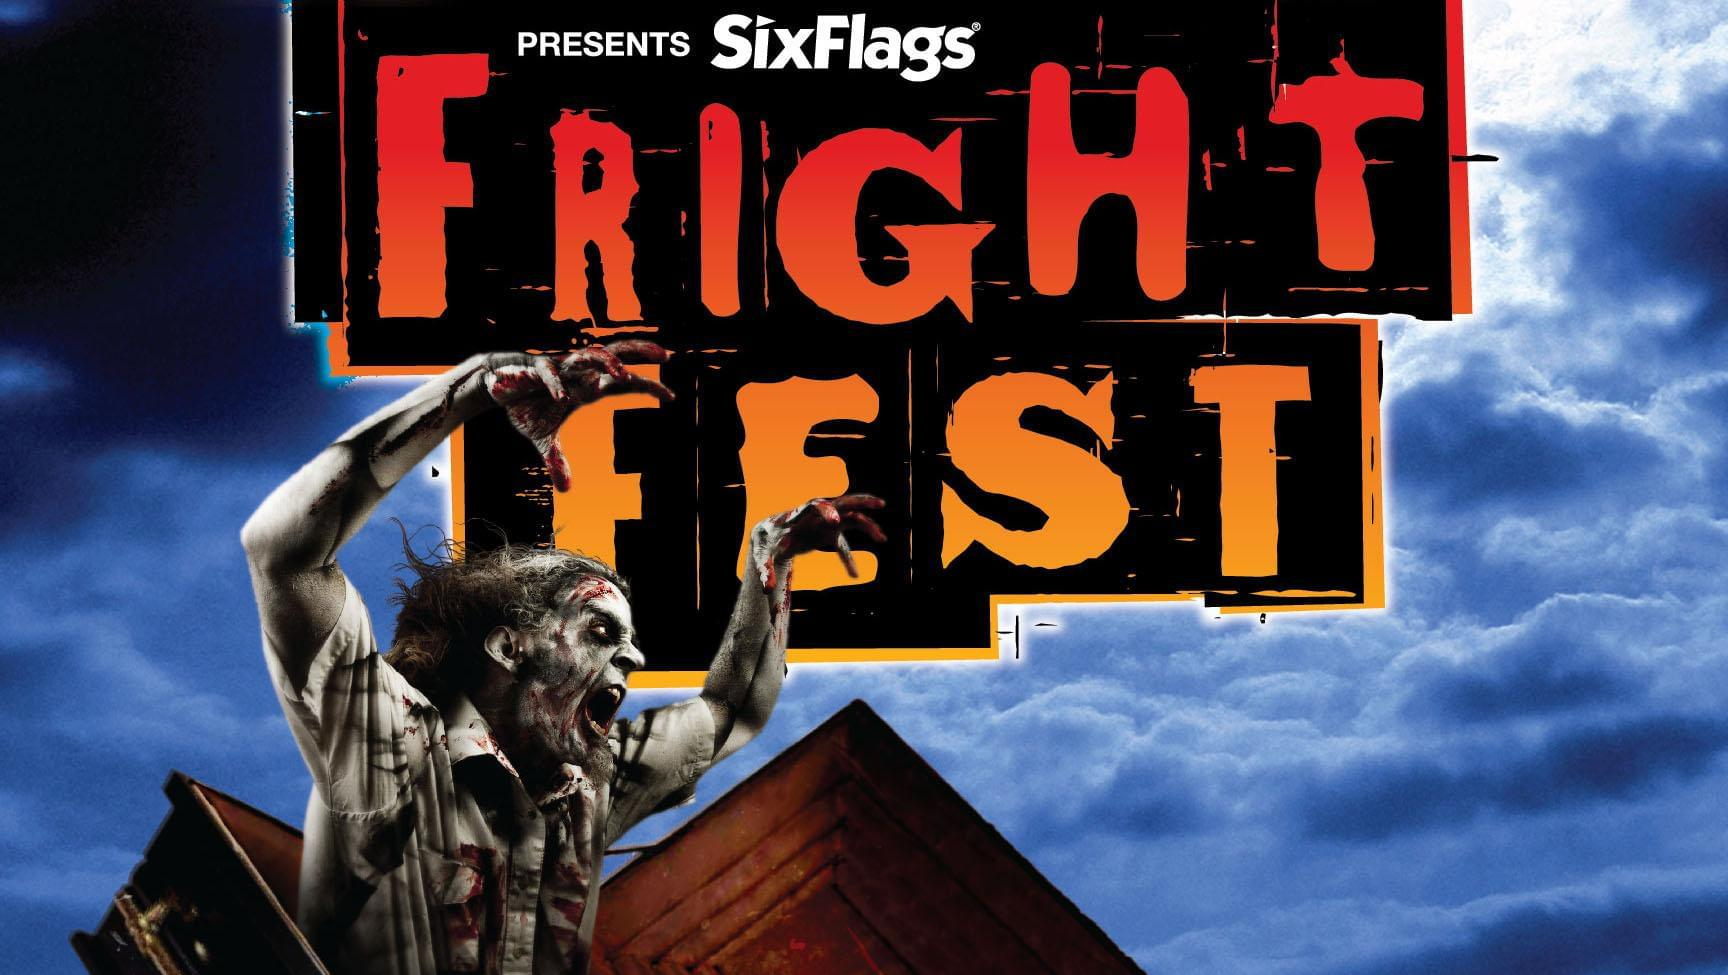 Six Flags Host Ridiculous Contest